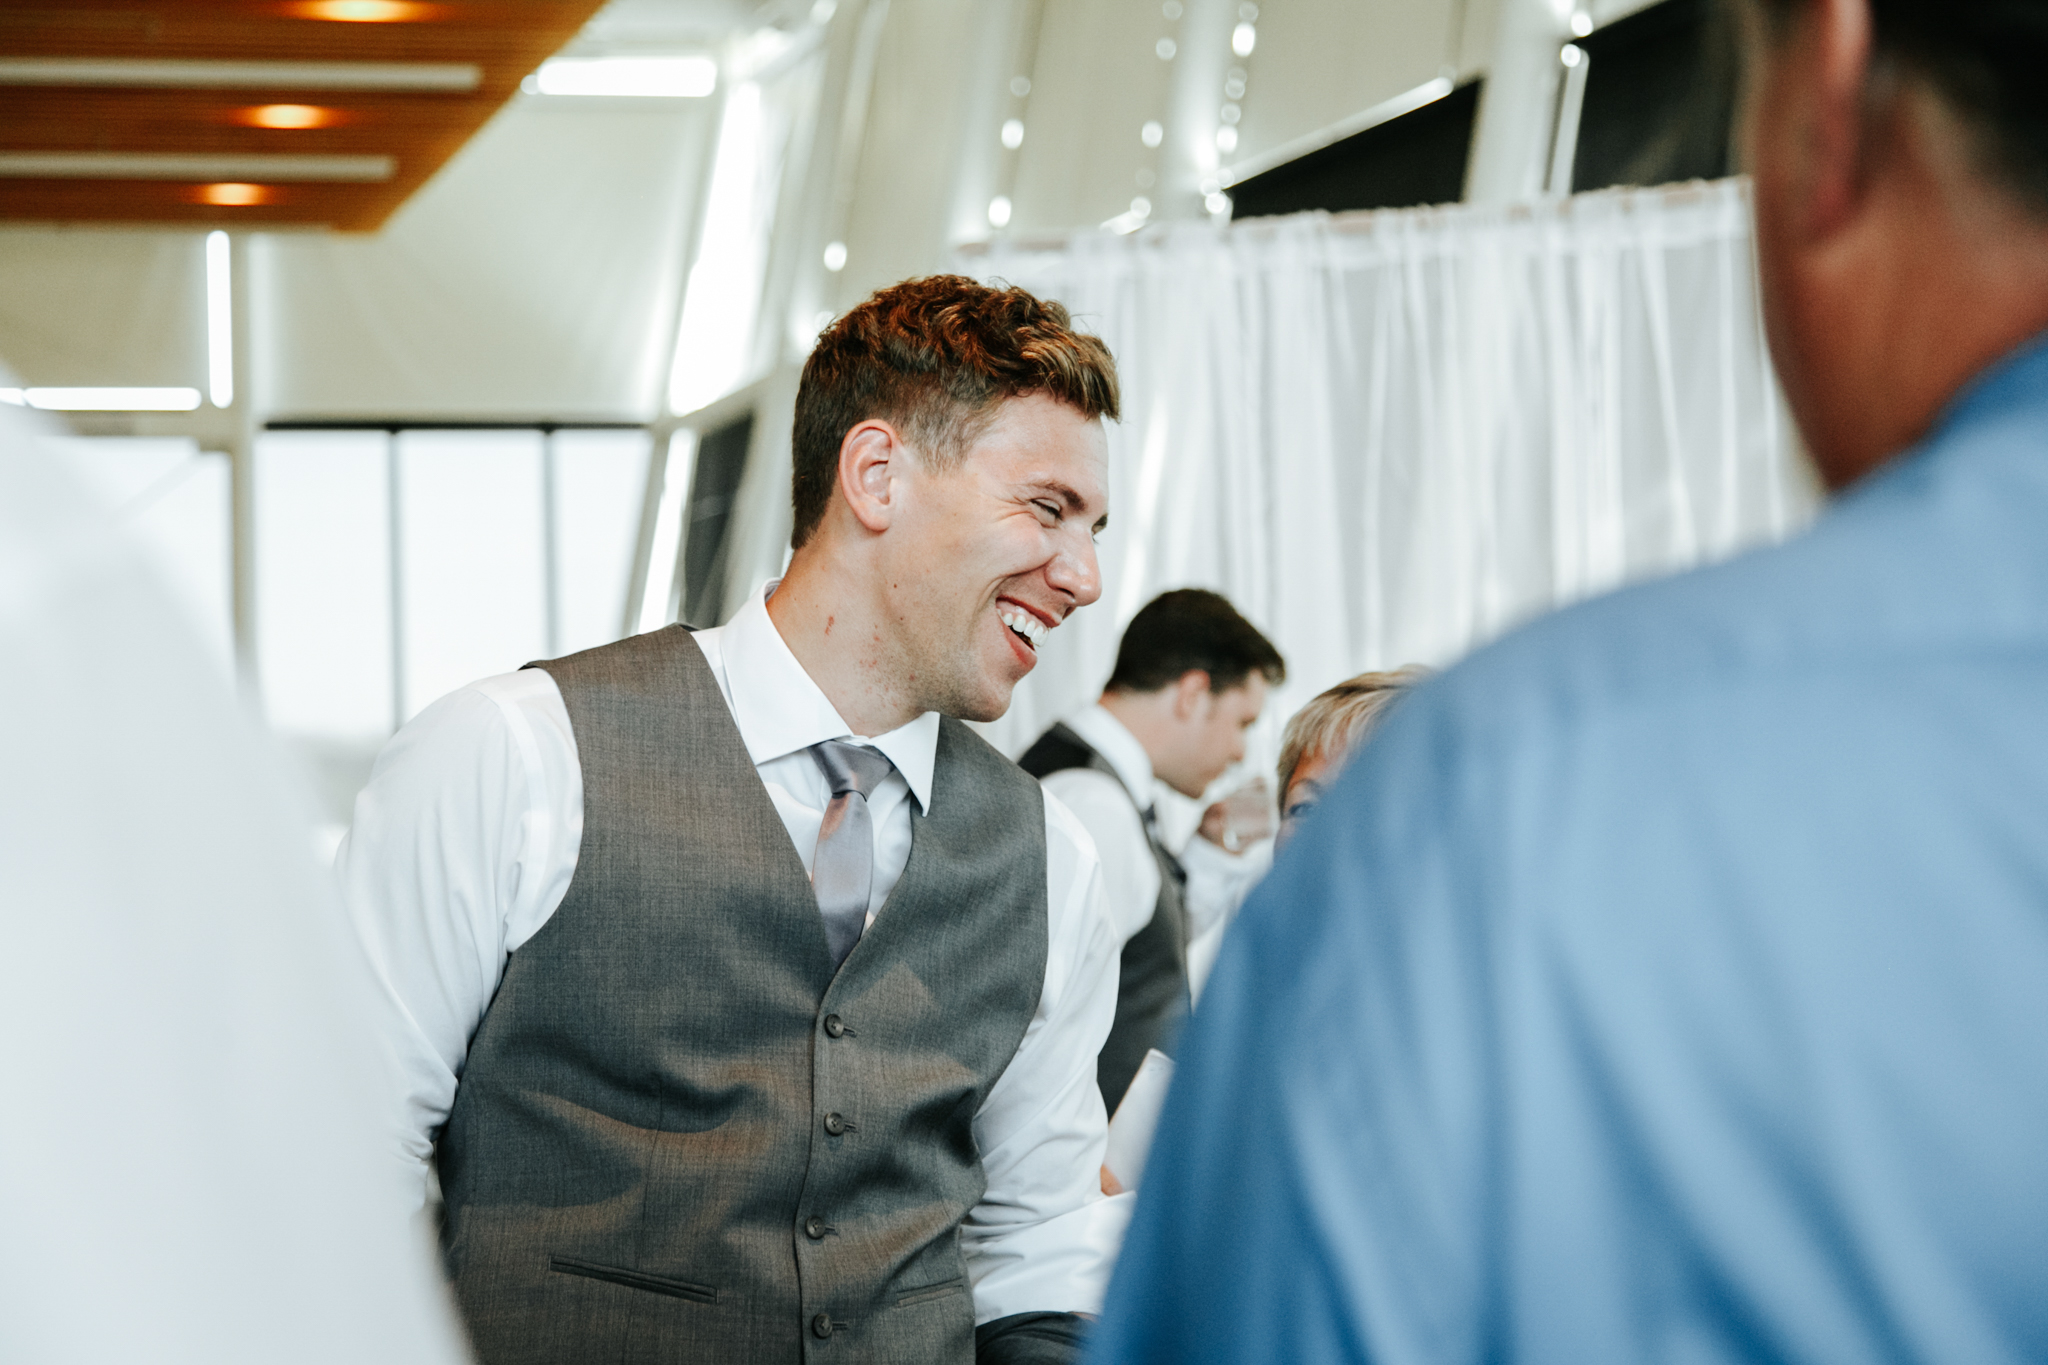 lethbridge-wedding-photographer-love-and-be-loved-photography-trent-danielle-galt-reception-picture-image-photo-171.jpg